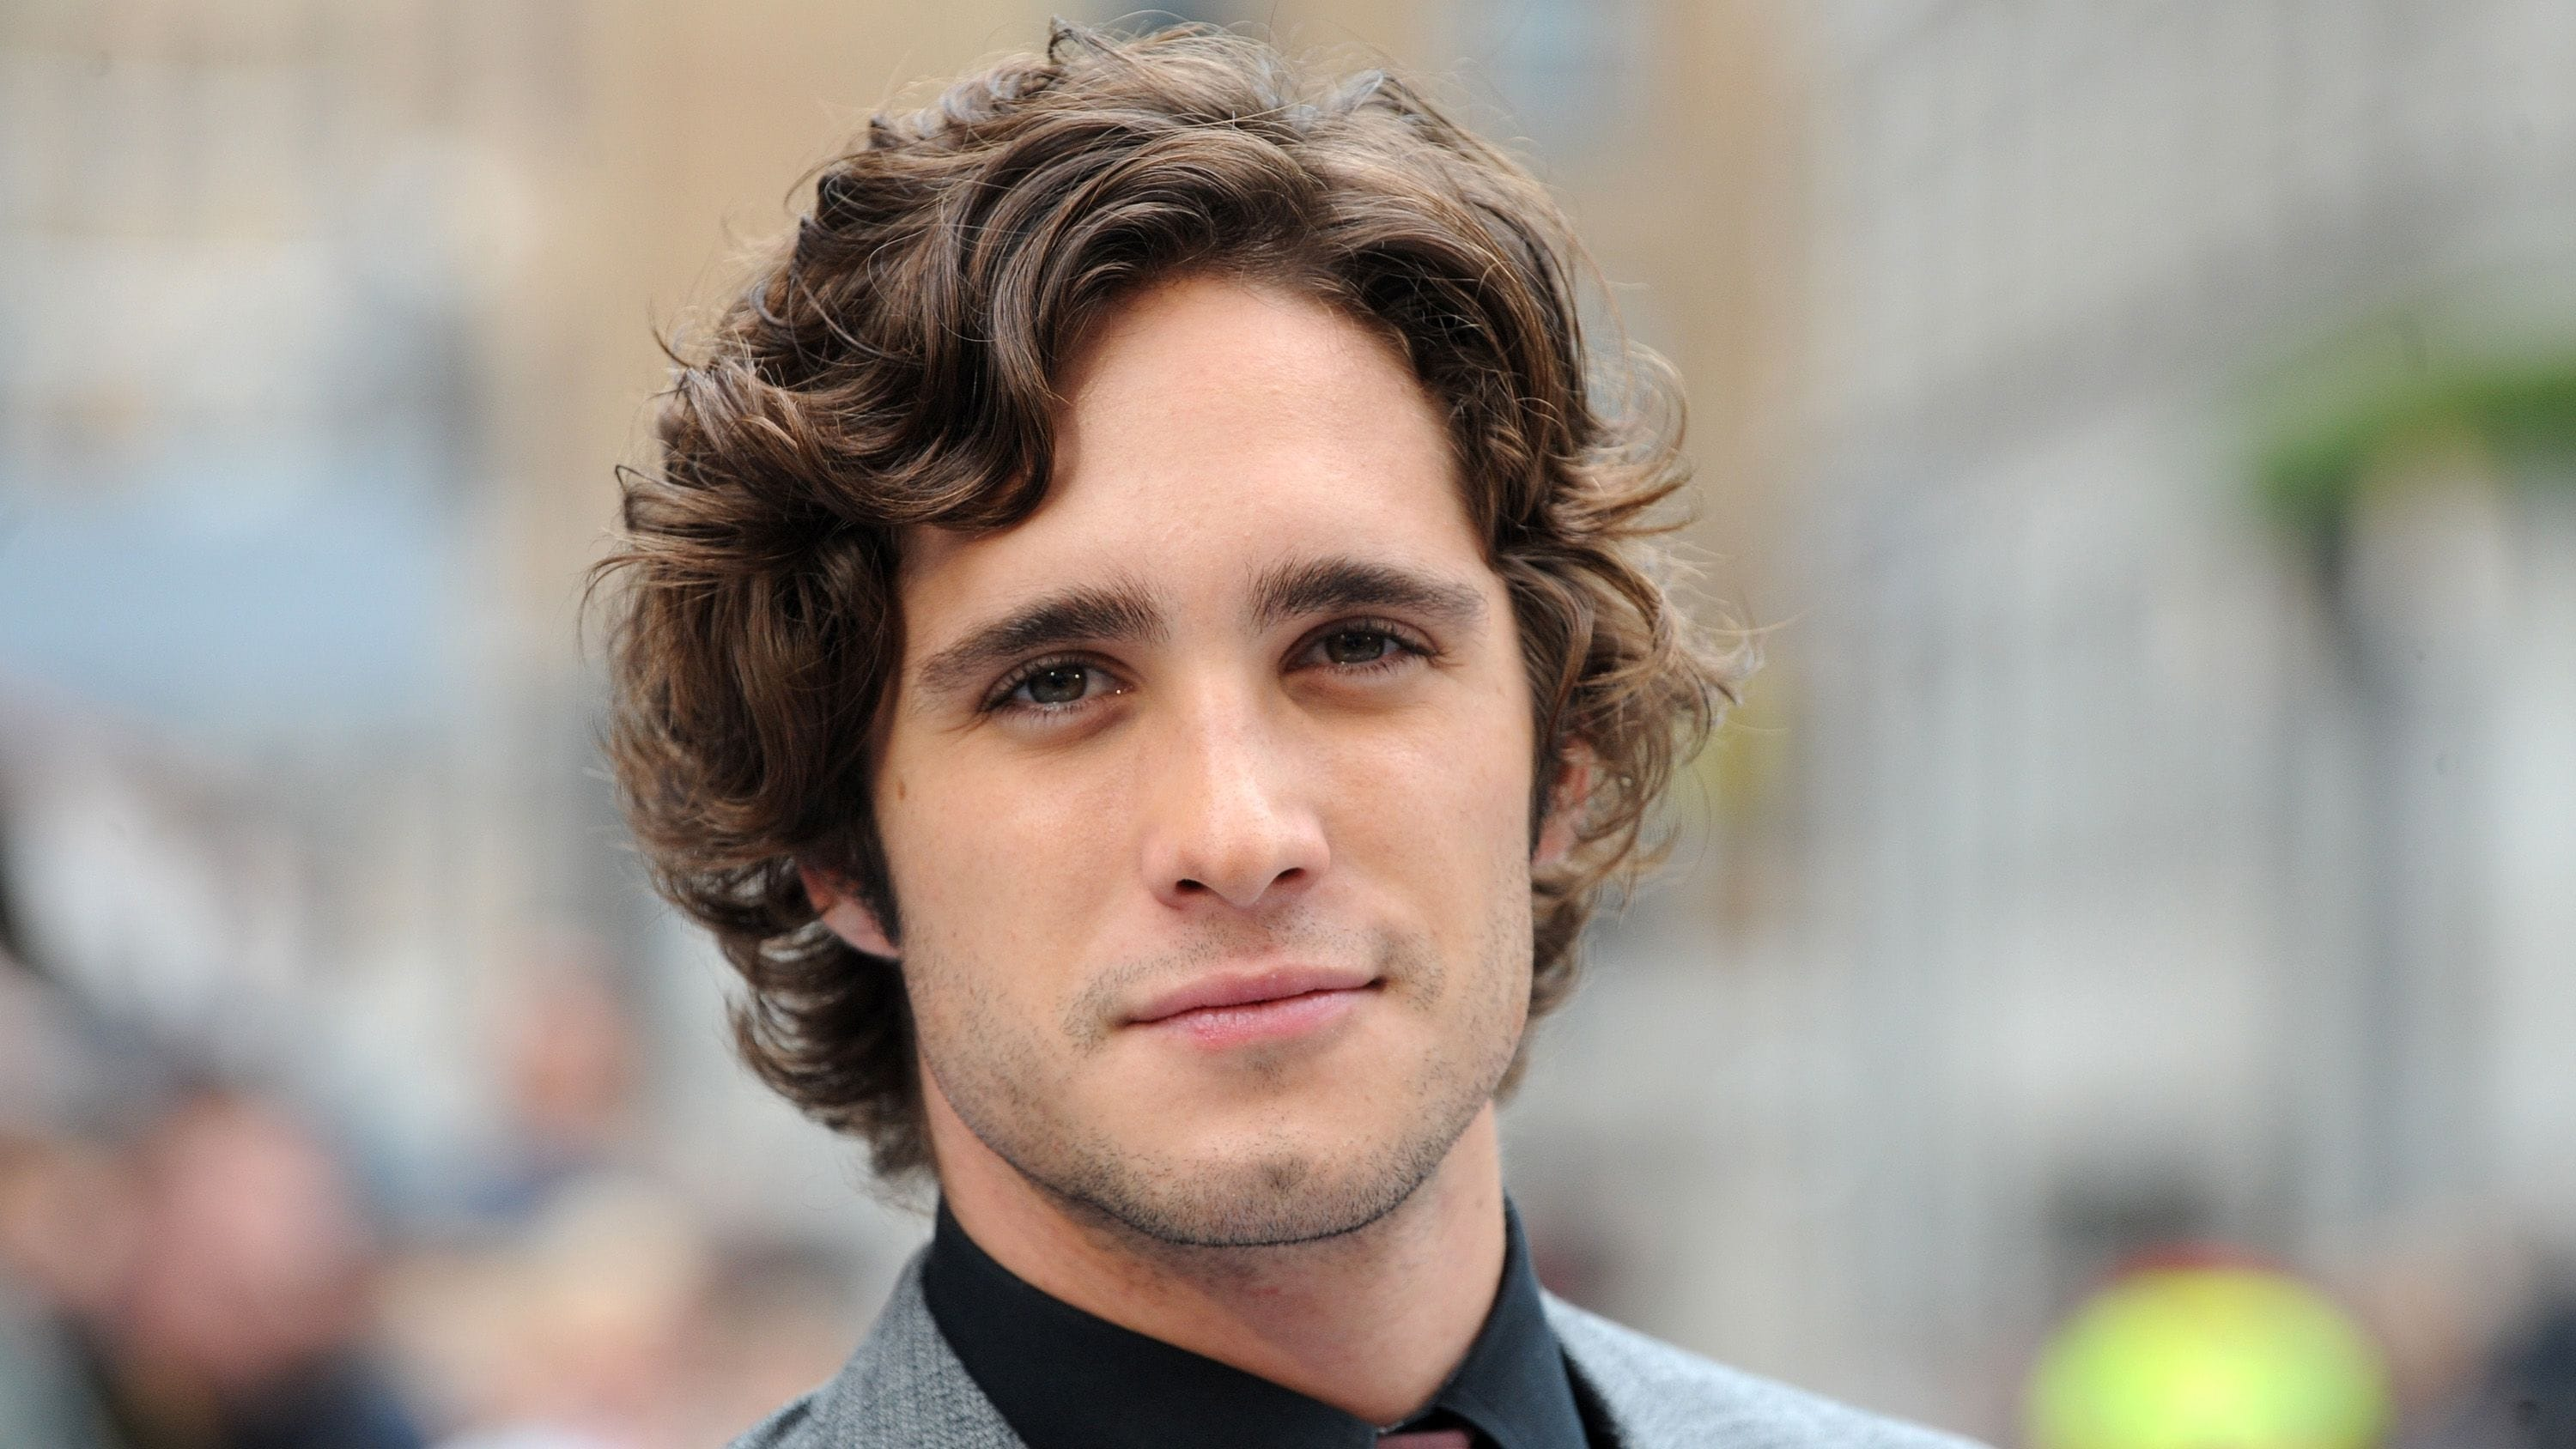 Diego Boneta Wallpapers